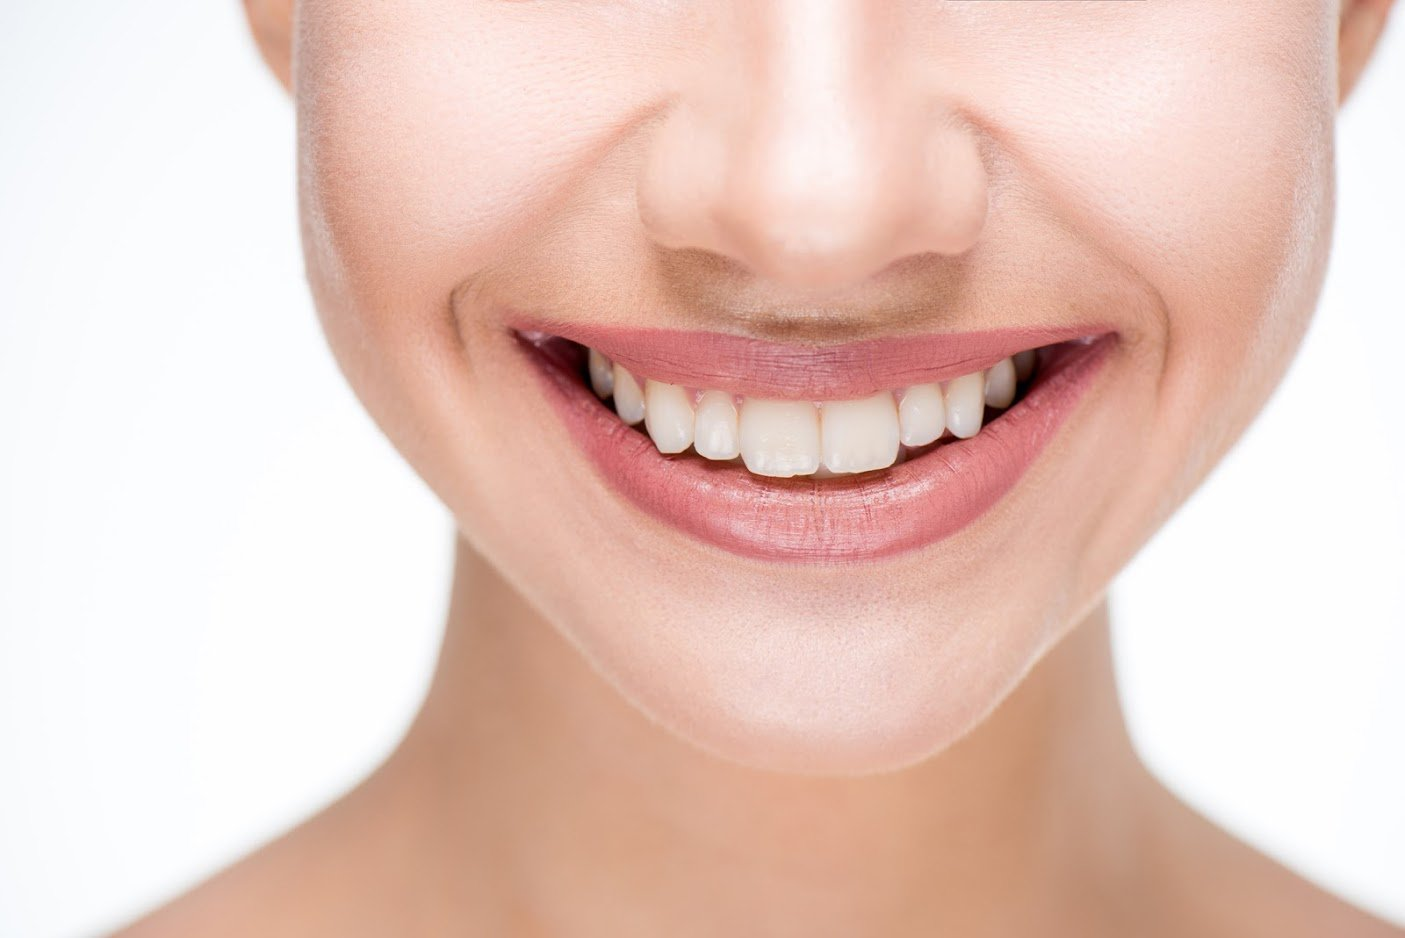 Play It Safe With Tooth Whitening